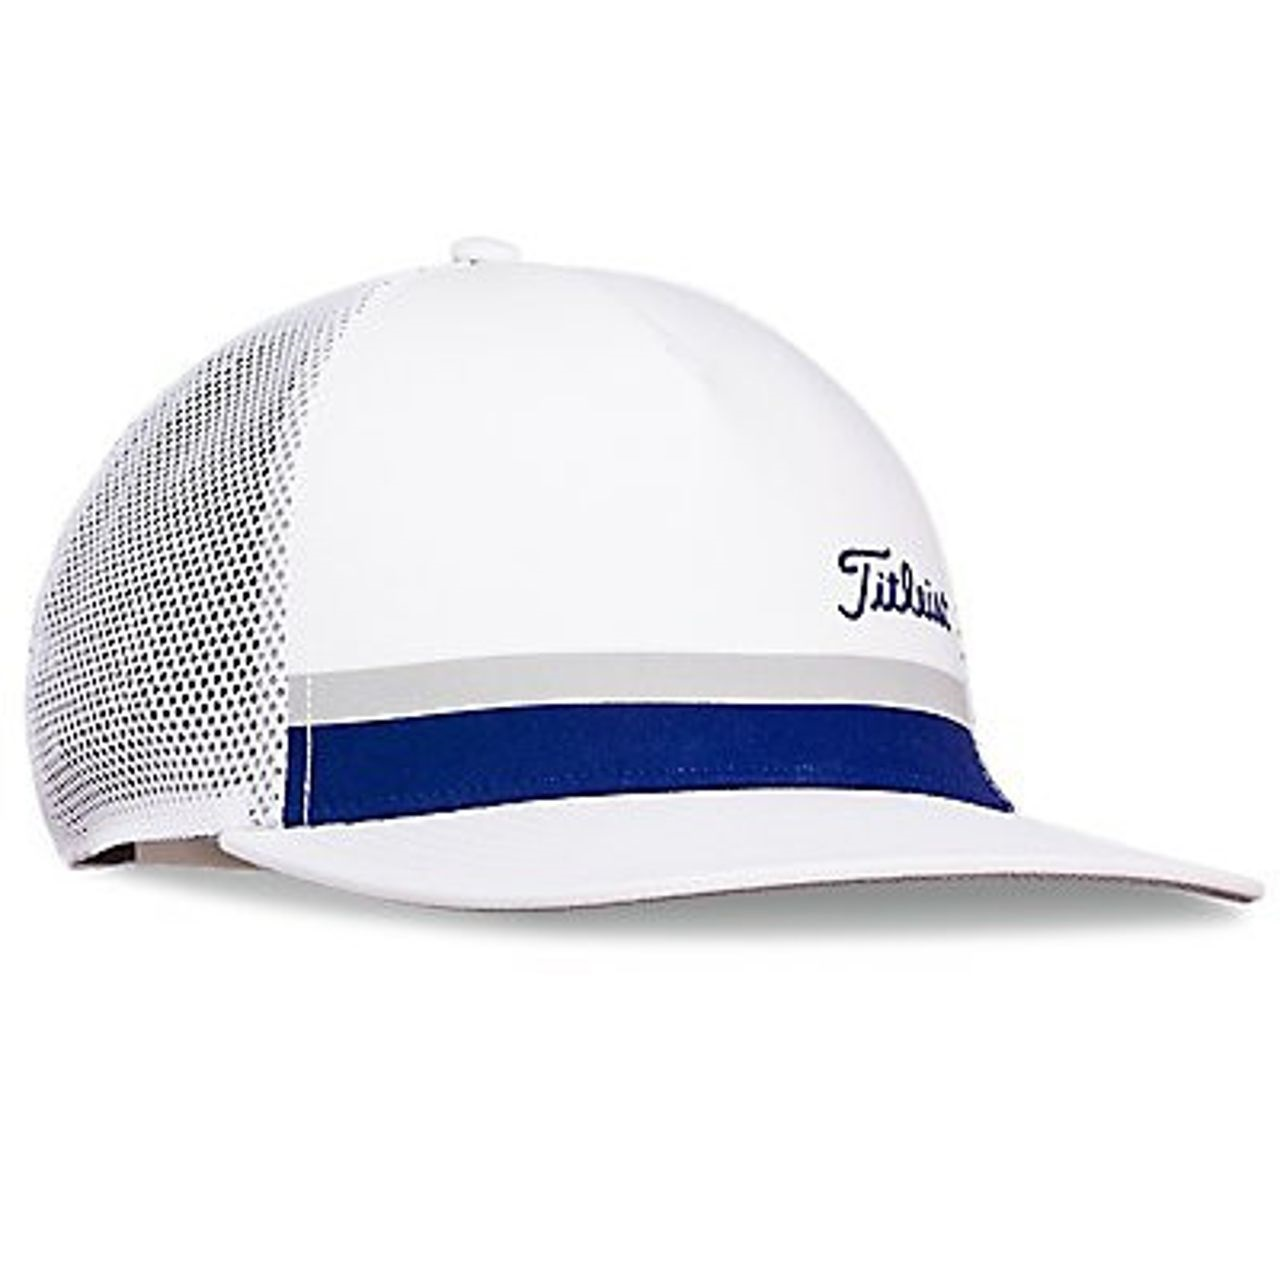 f314cfb51a2a4 Titleist Special Edition Tour Rope Flat Bill Snapback Hat ...